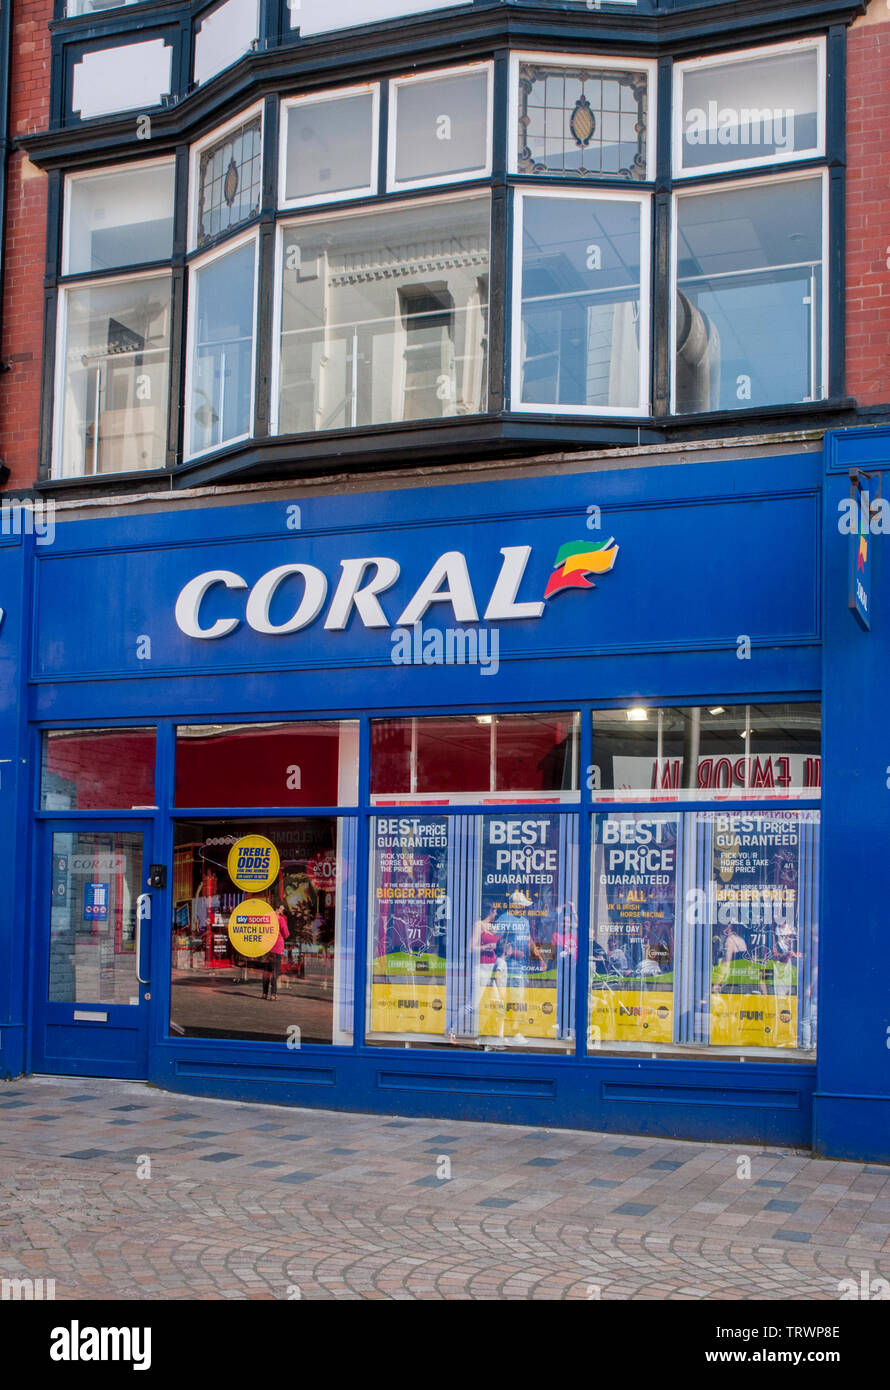 Shop frontage of Coral bookmakers betting shop  Modern front beneath older upper floor - Stock Image